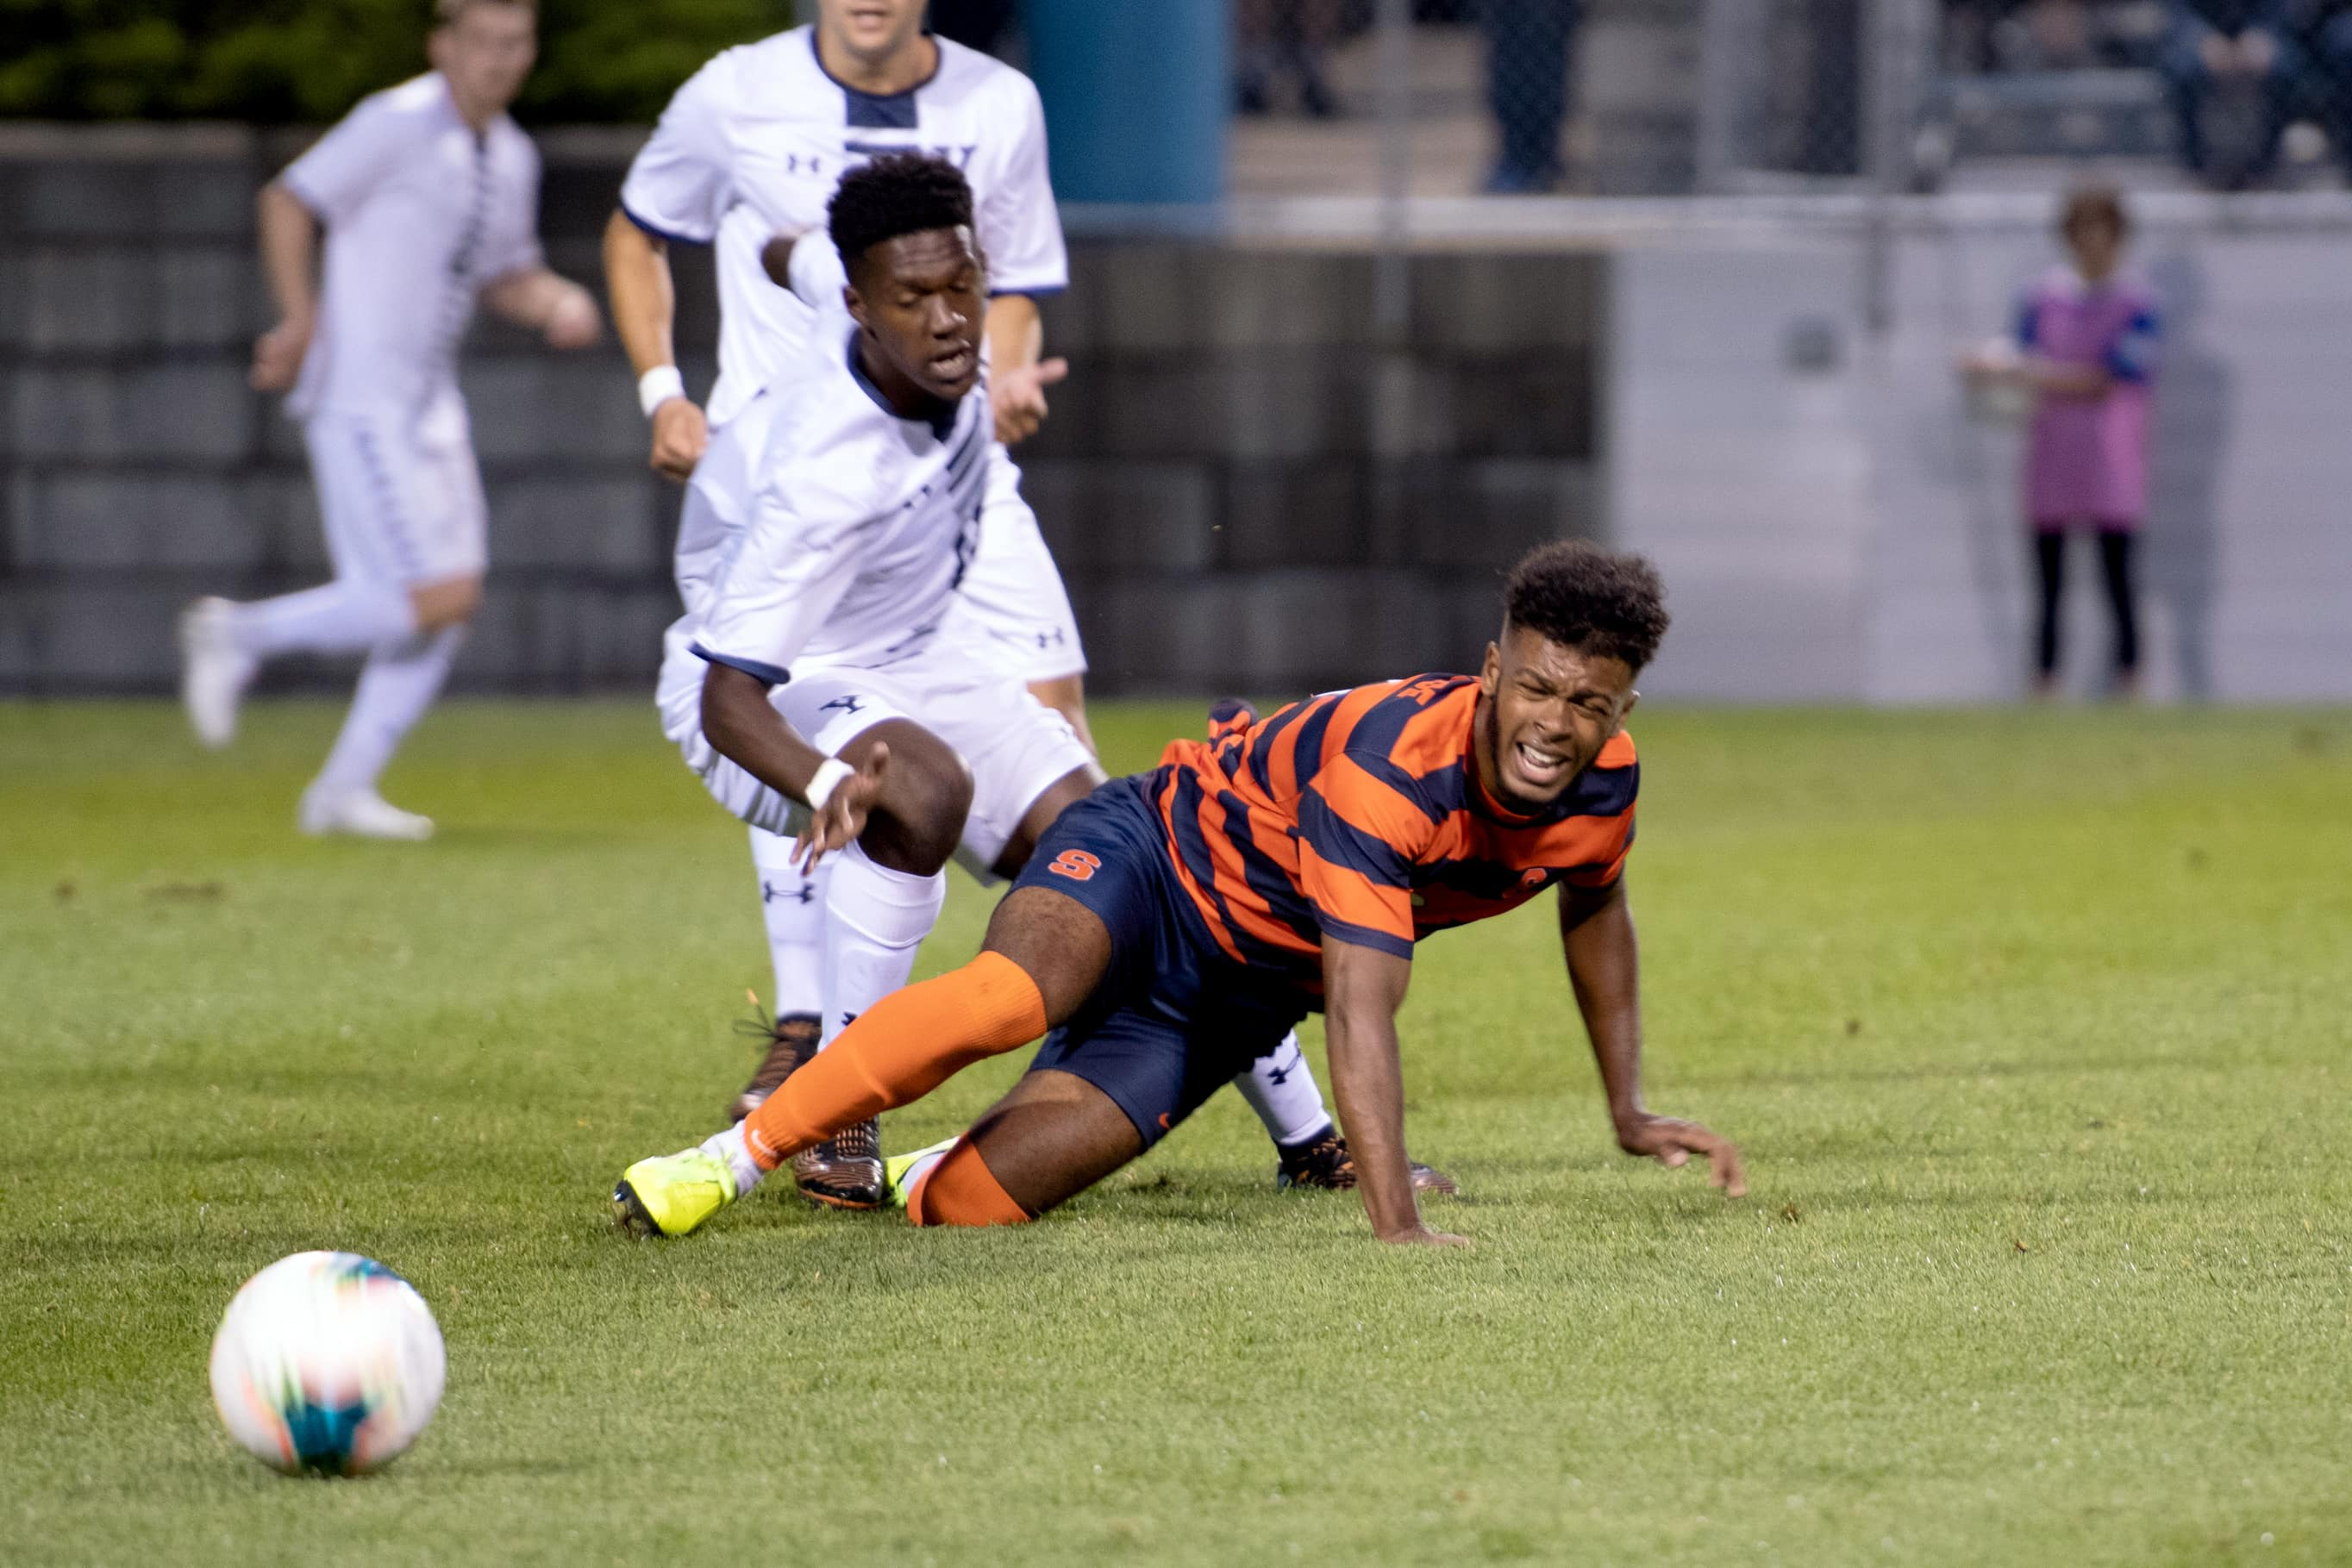 Julio Fulcar falls to the ground going after after a ball against Yale on Friday.